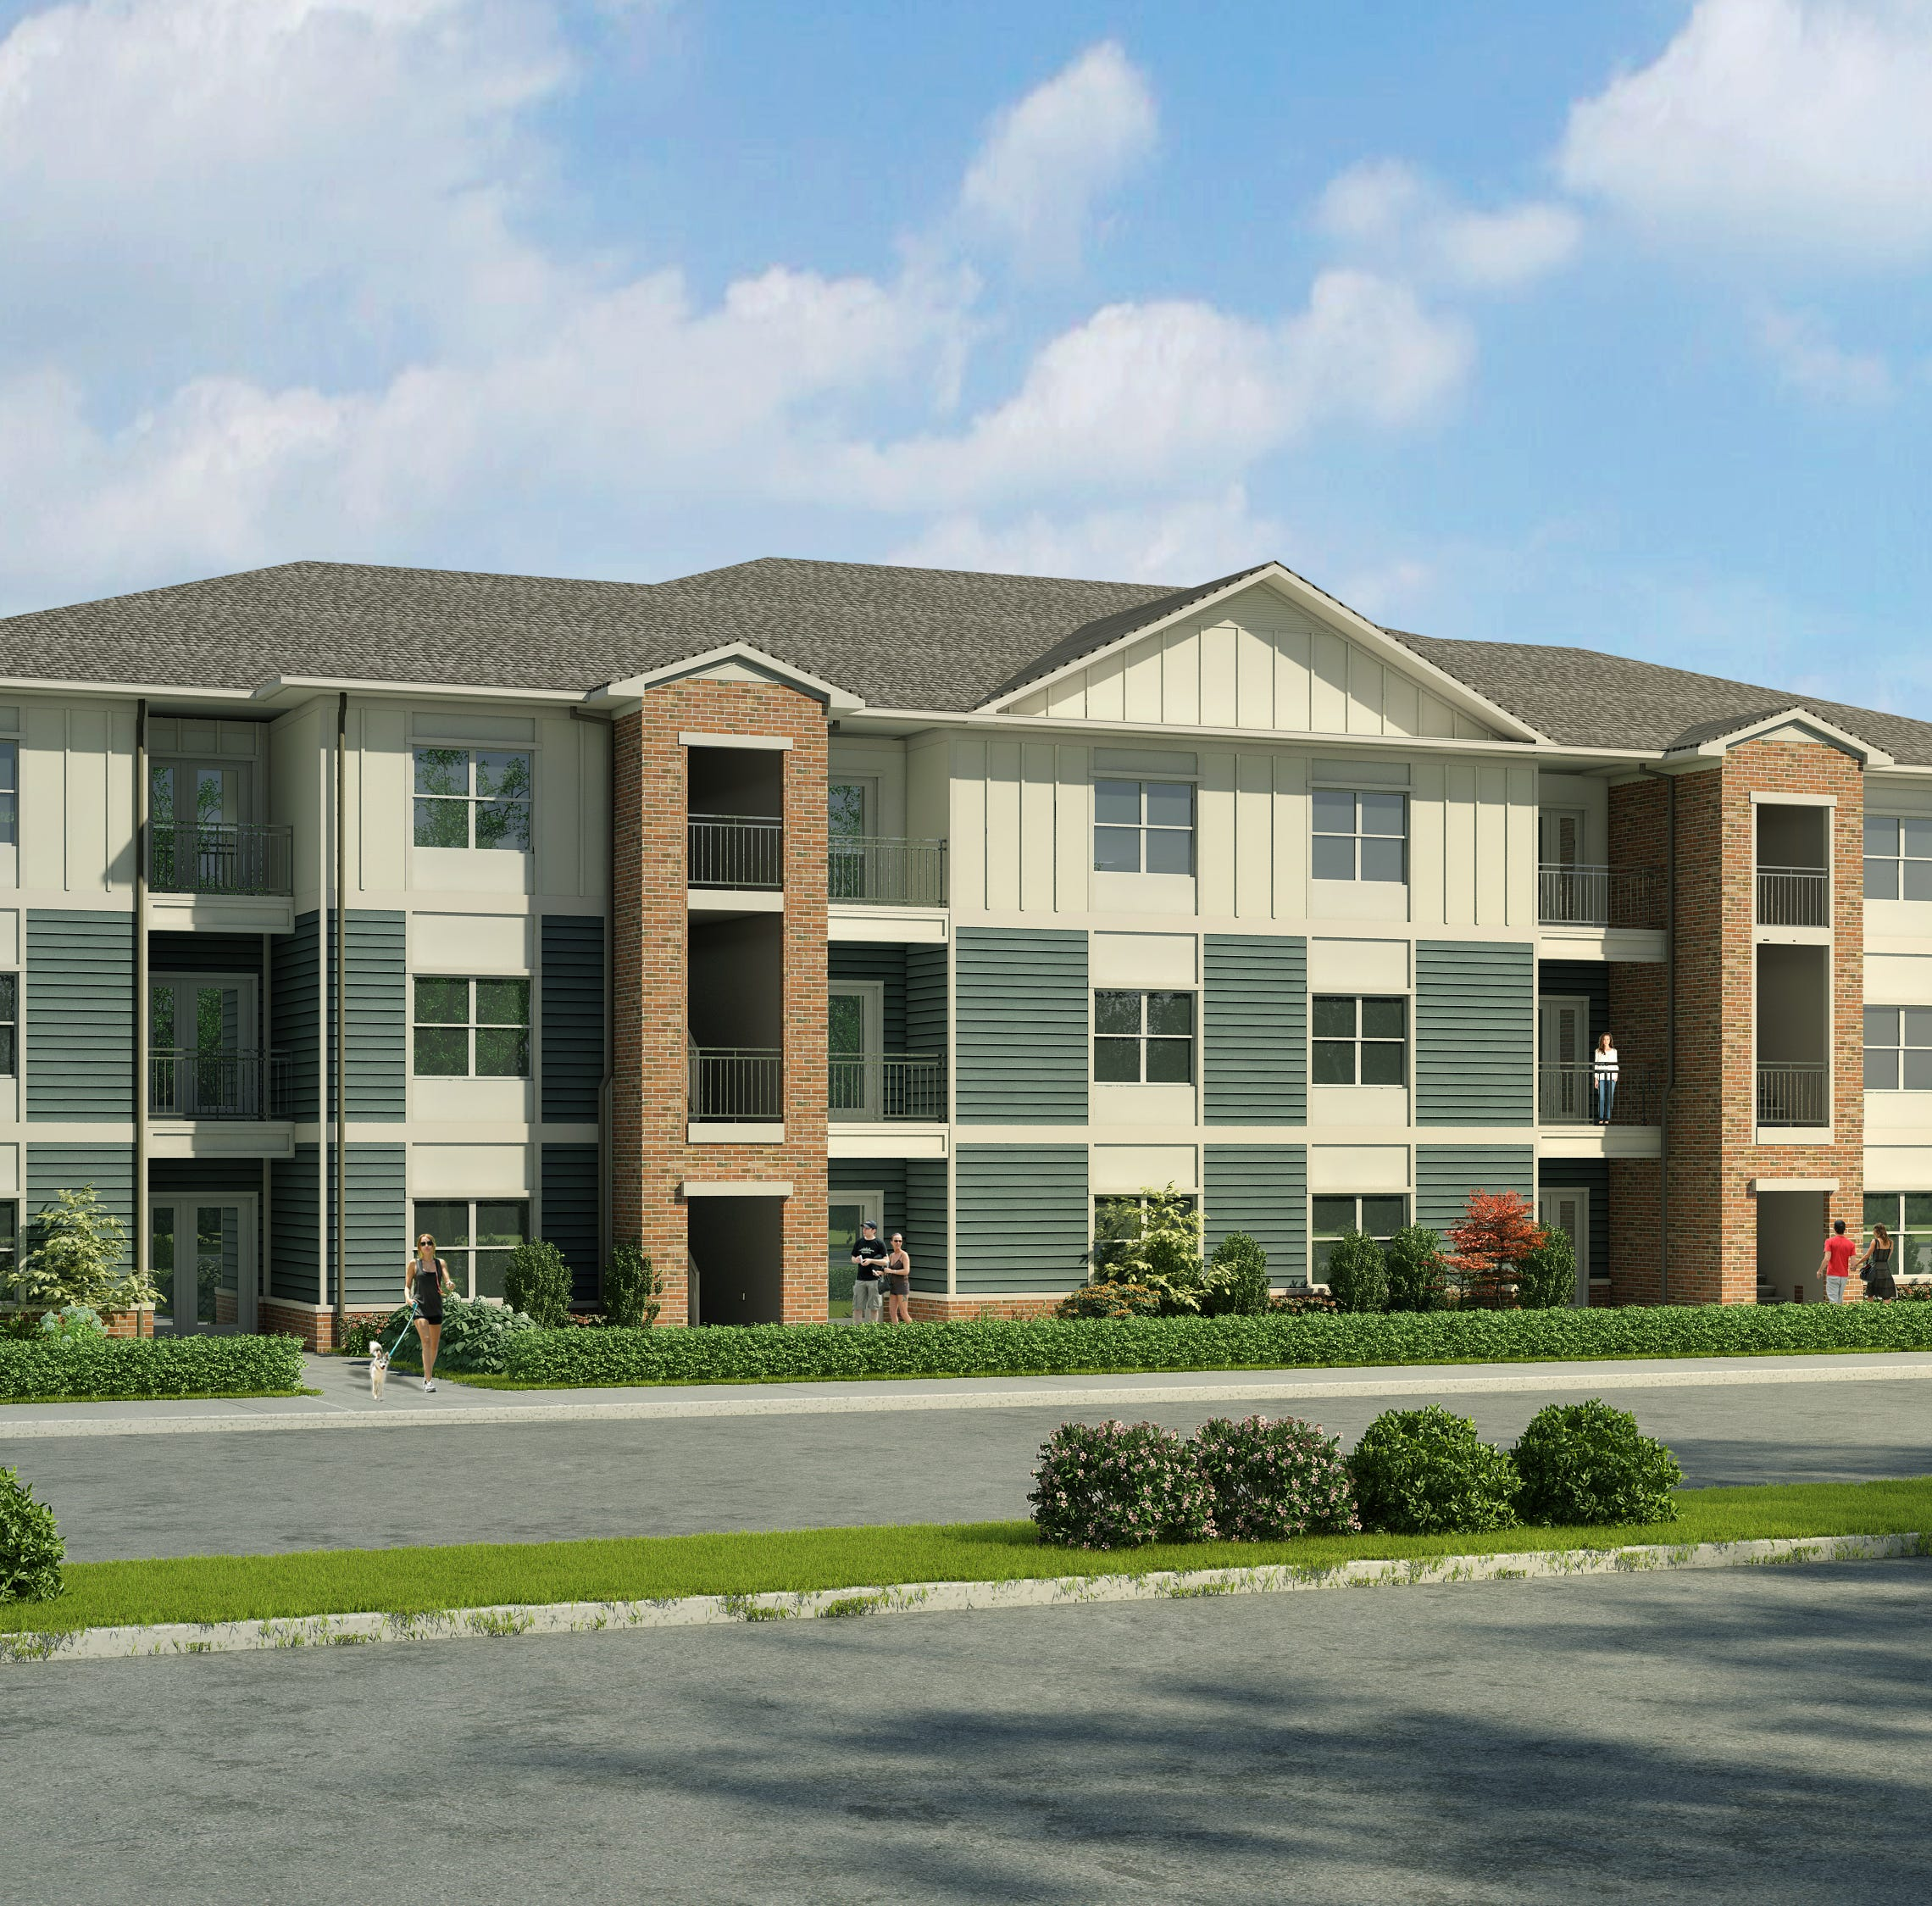 With 1,100 Knoxville apartments on the way, is there a need for more?